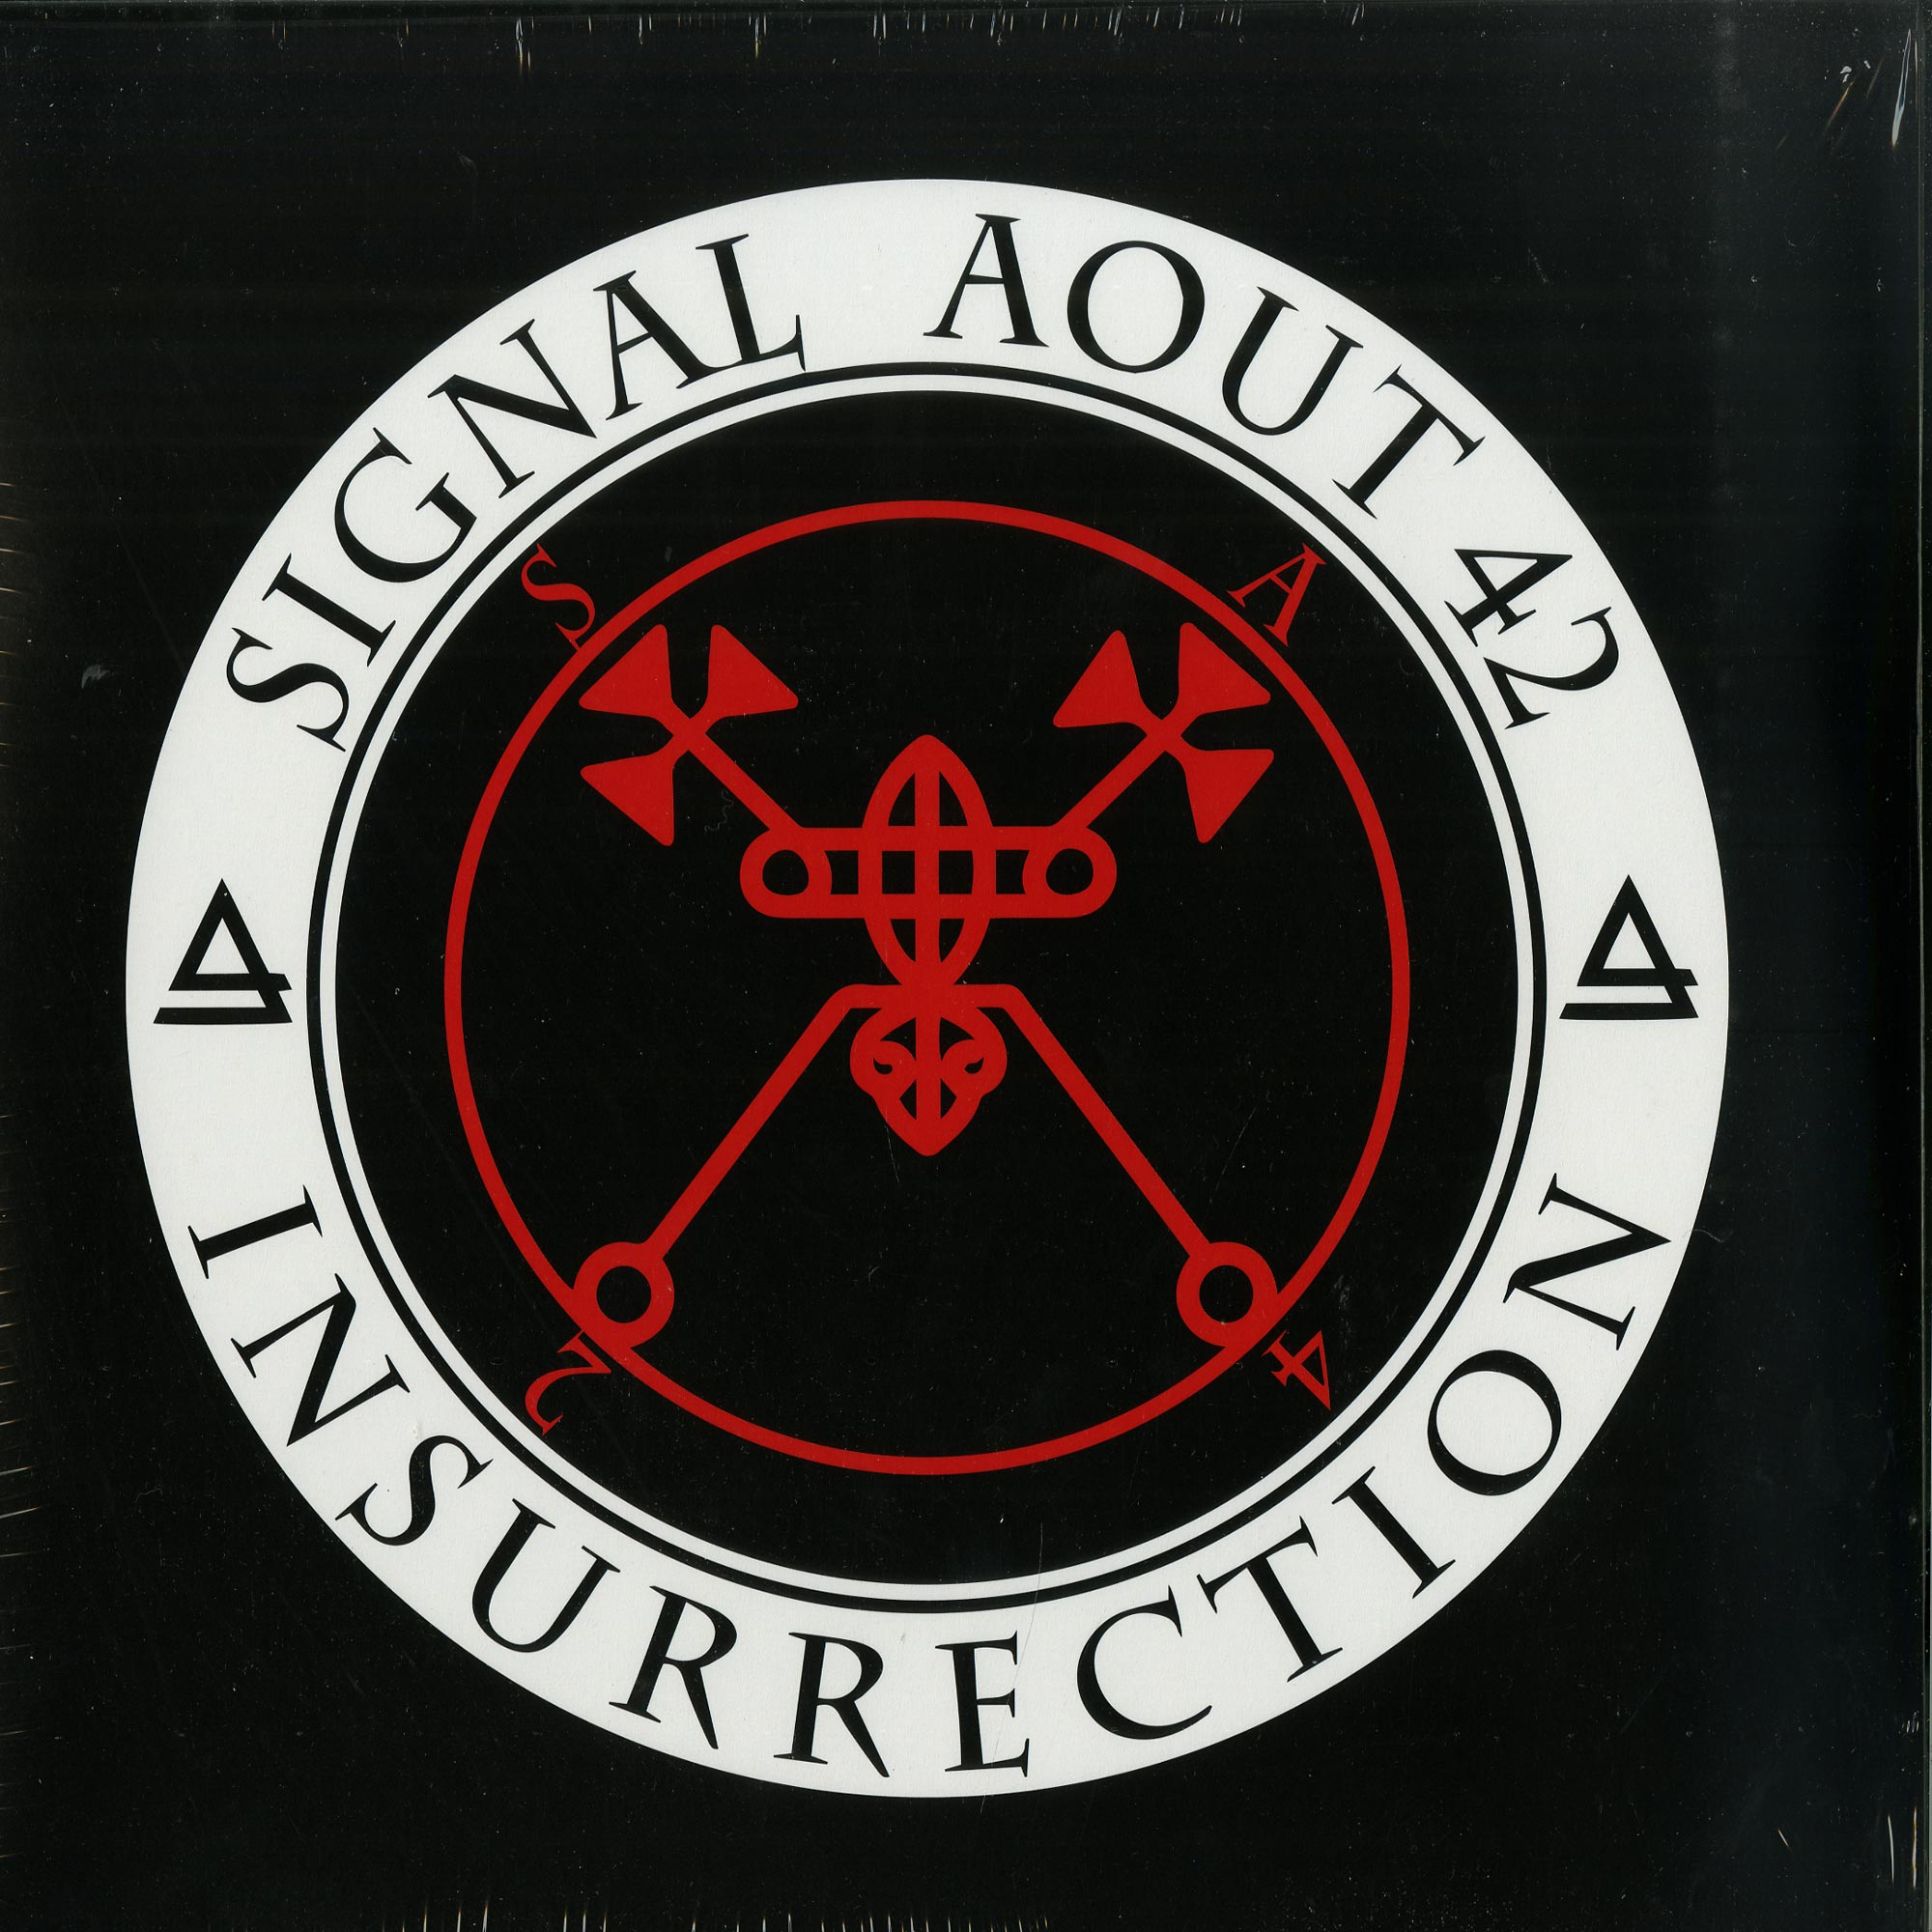 Signal Aout 42 - INSURRECTION